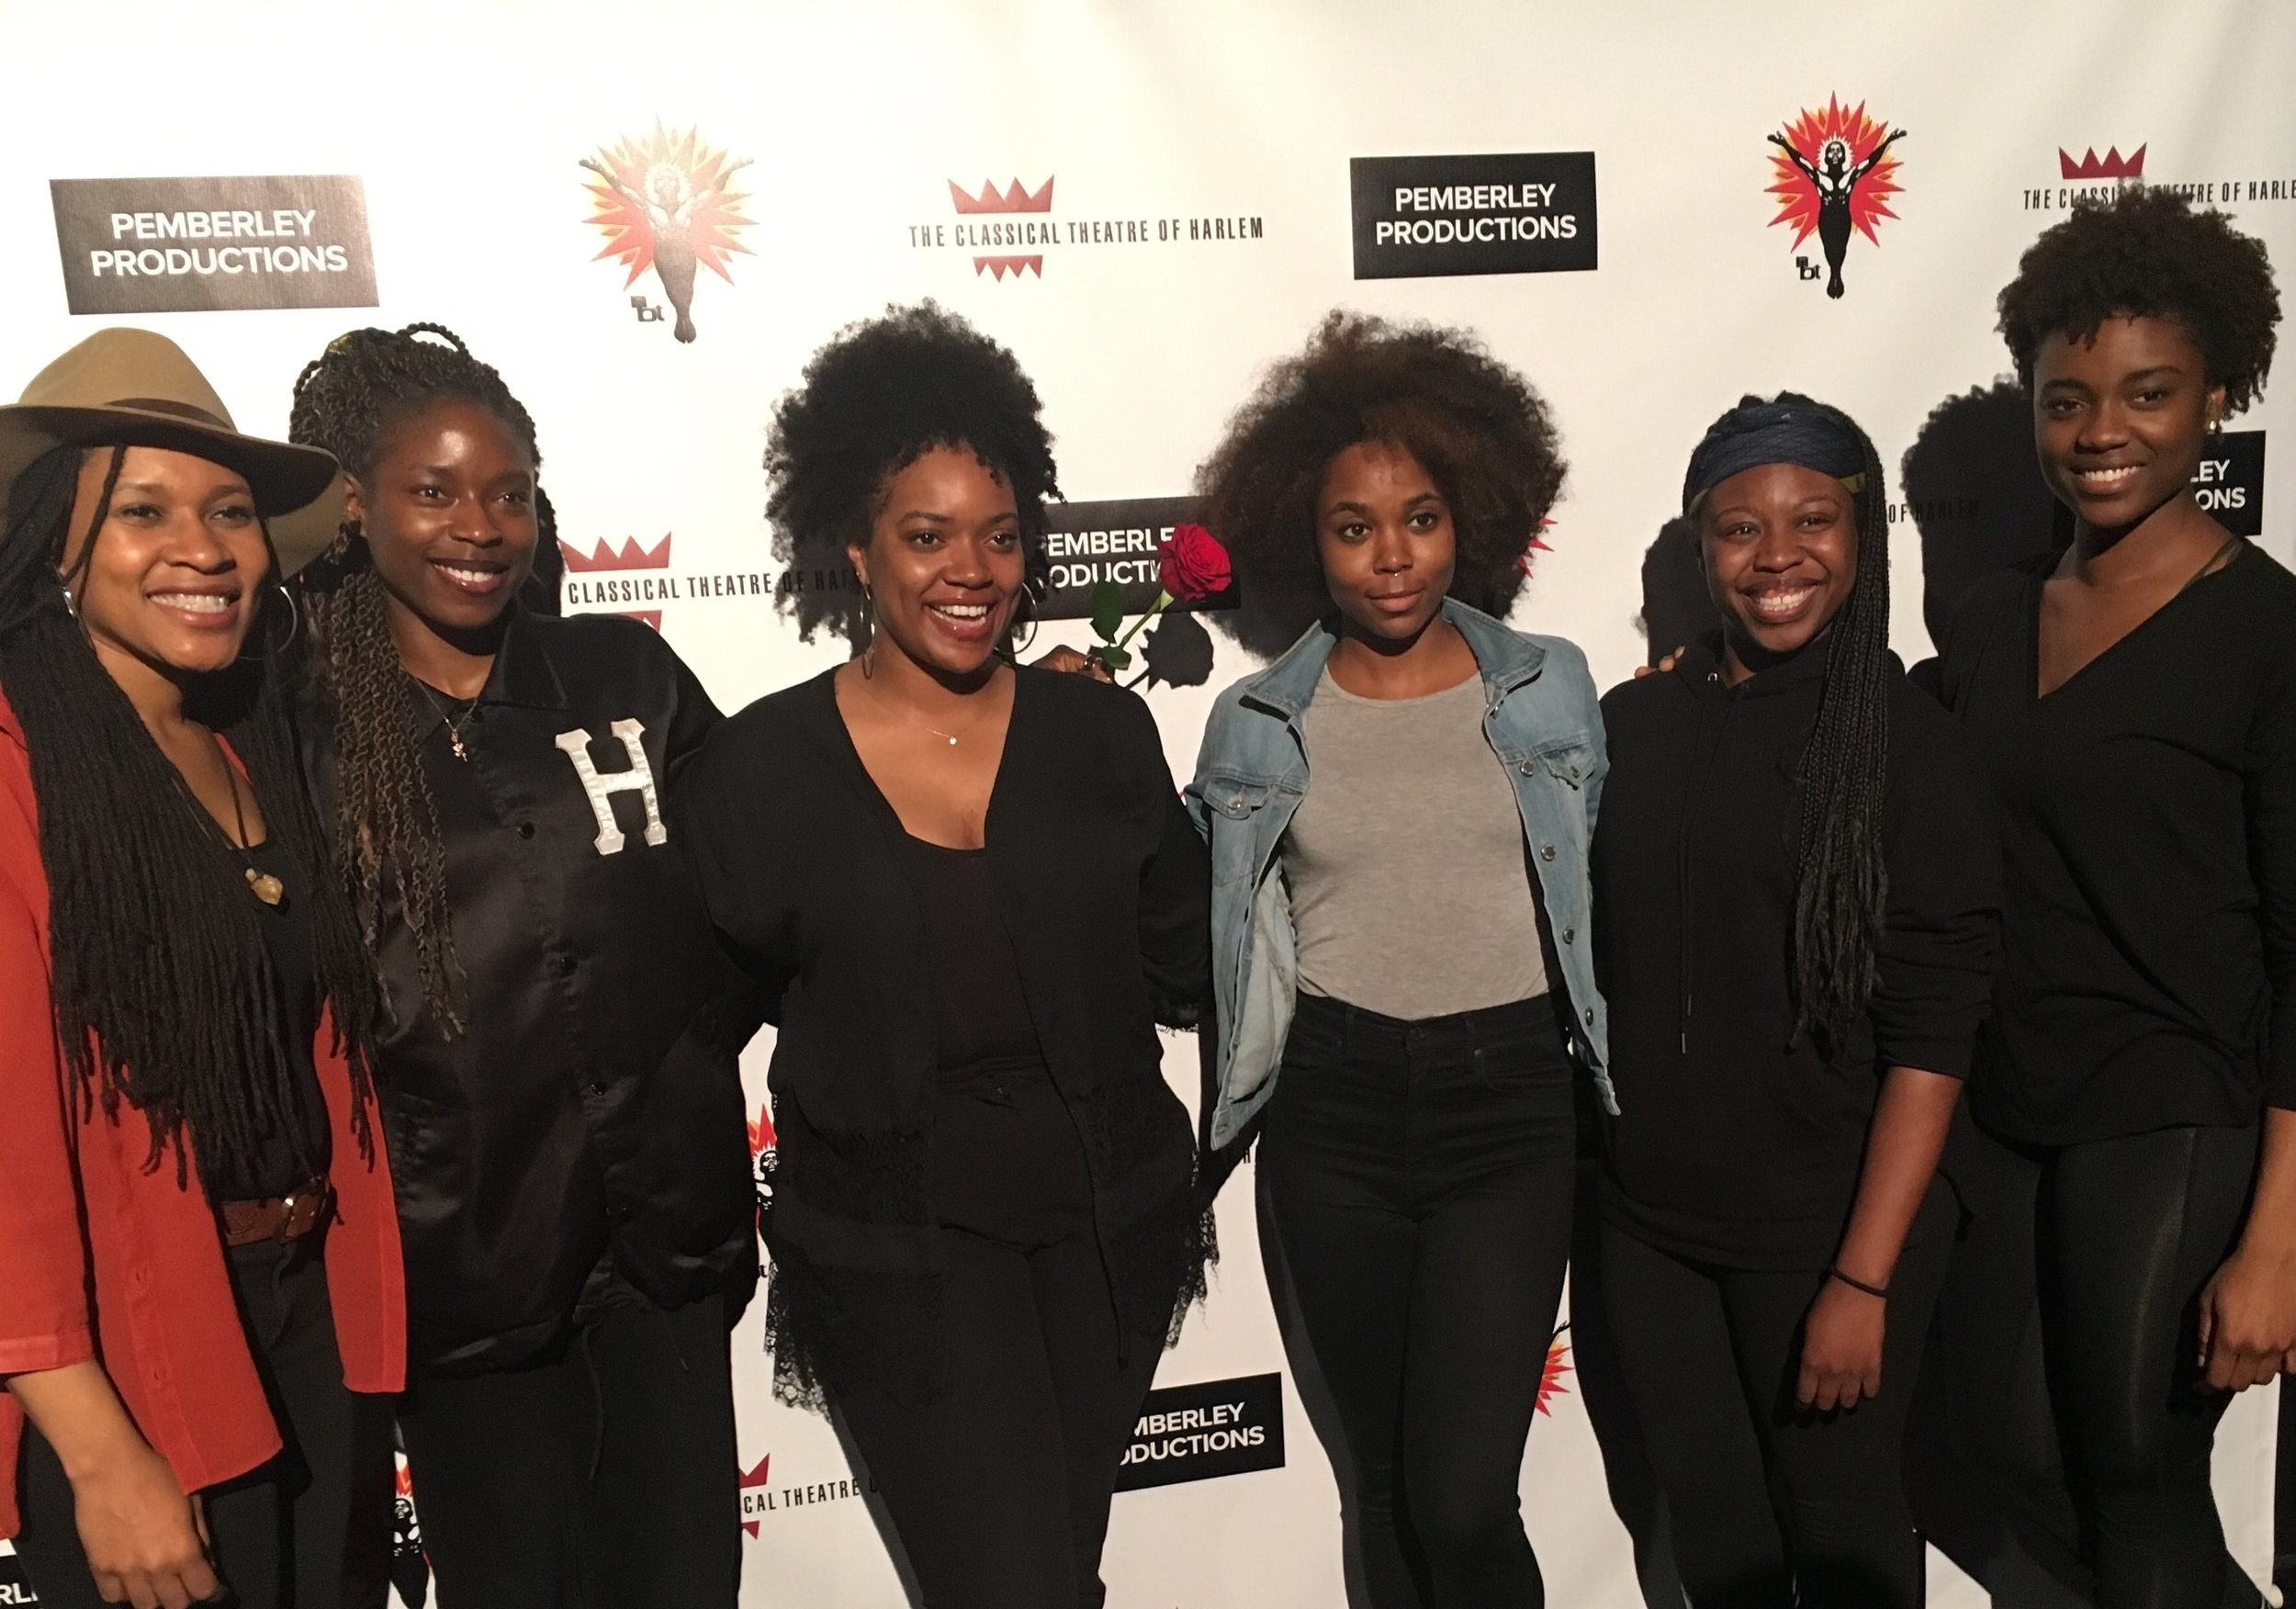 From L to R: Tia James (dir), Olamide Candide-Johnson, Sydney Elisabeth, Naomi Lorrain, Nedra Snipes and Katherine Turner.